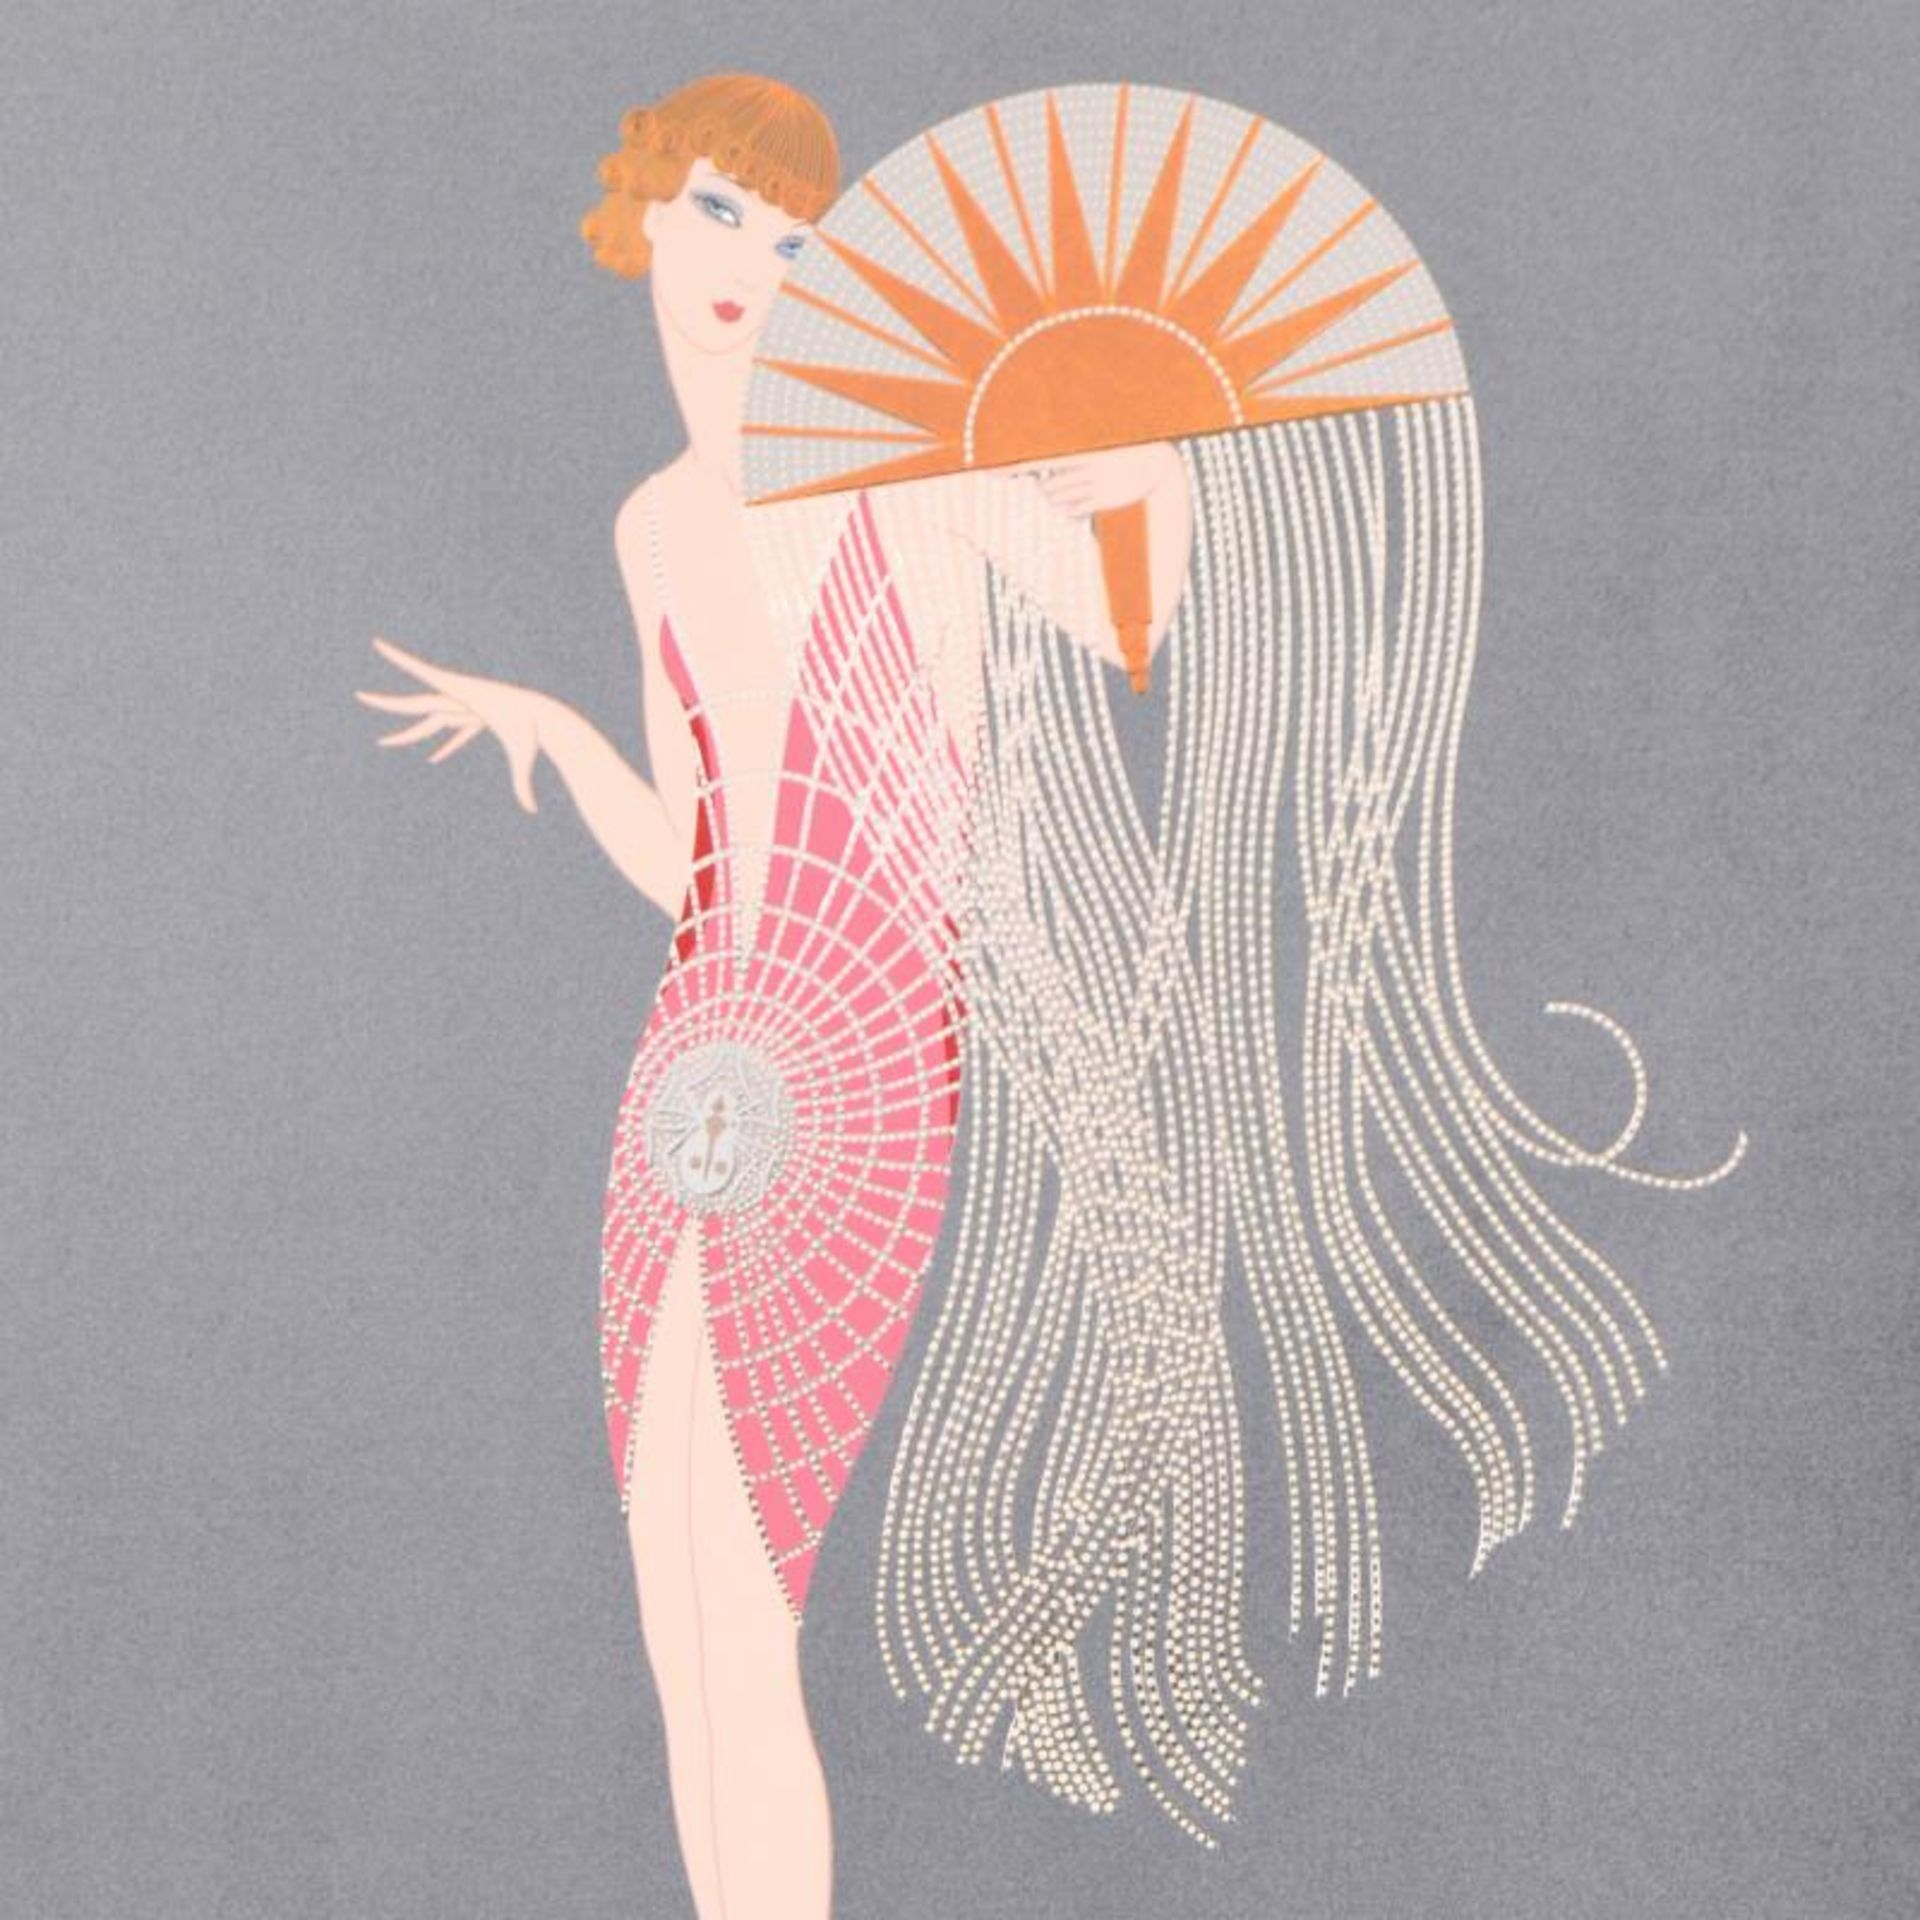 Flapper by Erte (1892-1990) - Image 2 of 2